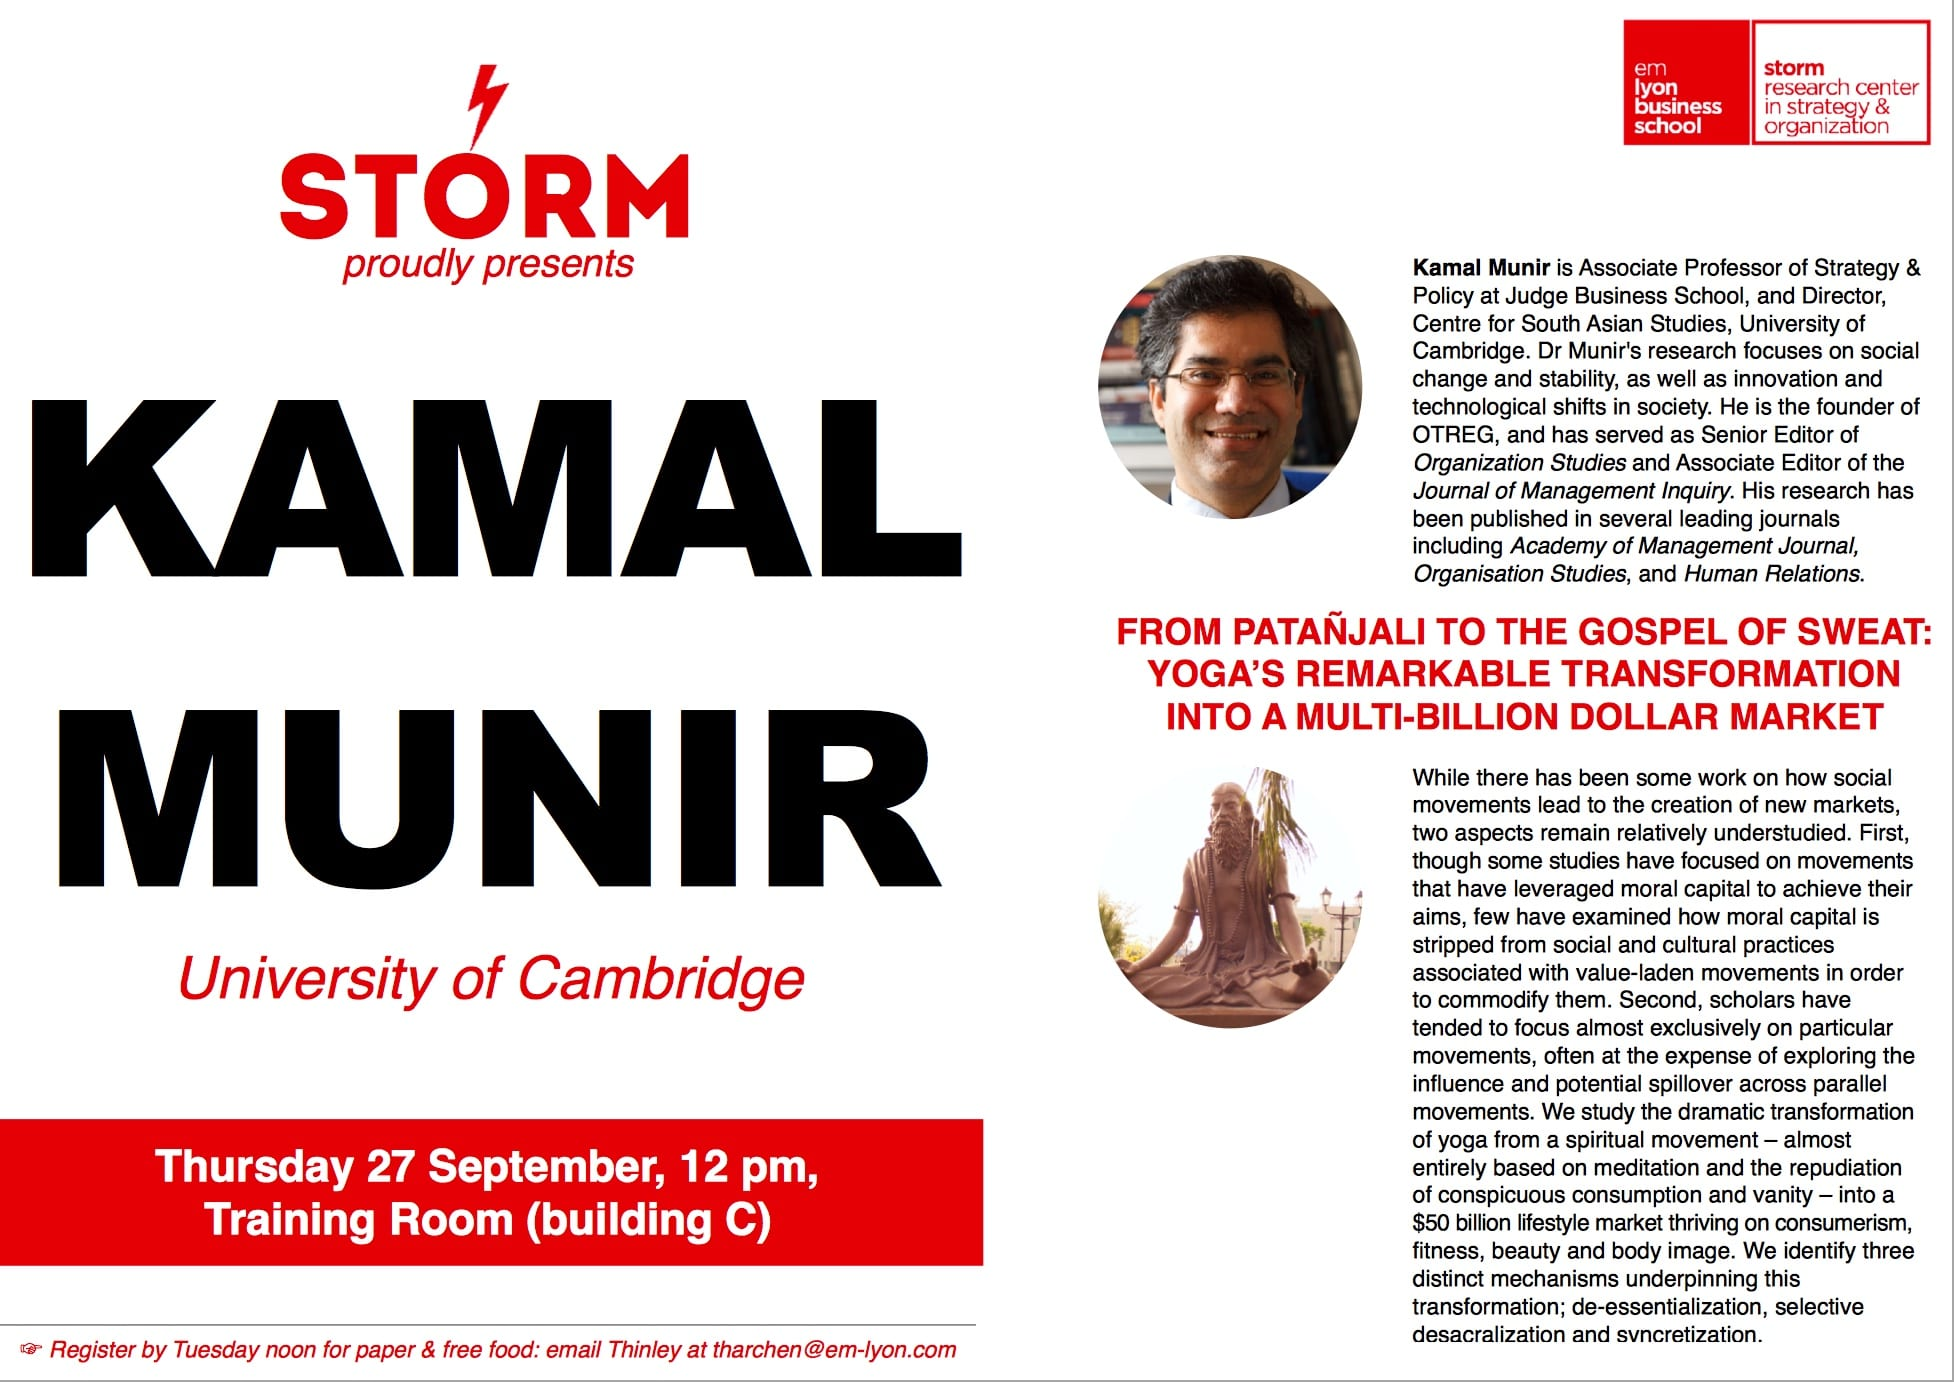 27 September 2018: KAMAL MUNIR (U. of Cambridge)